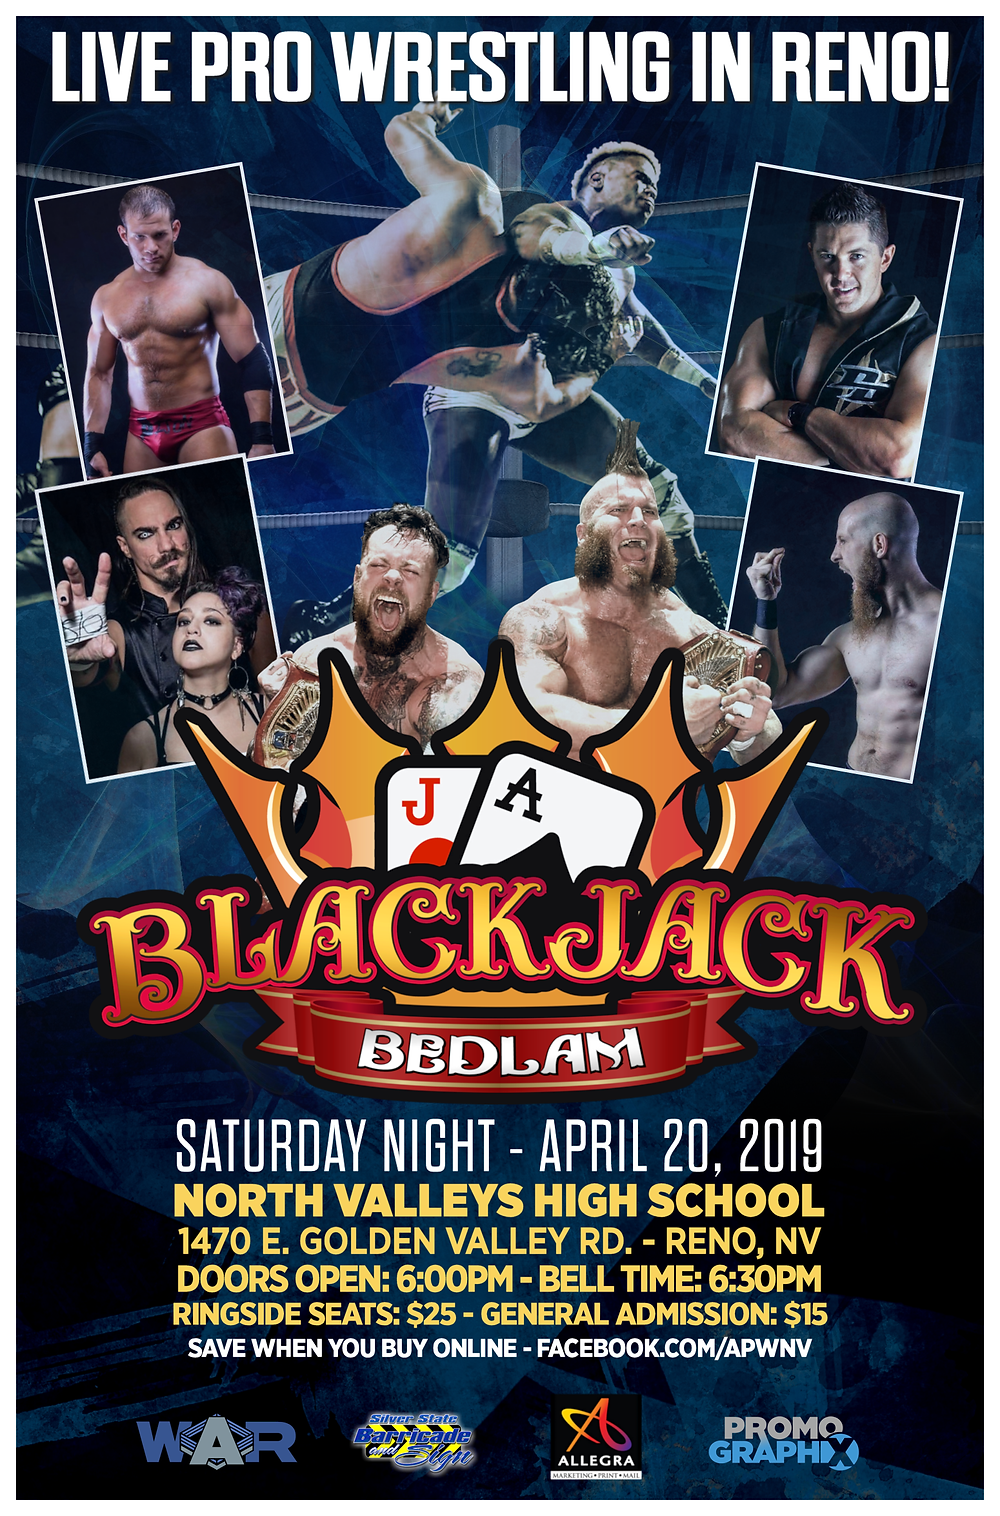 All the profits from the online sales will go directly towards the money for the pool!  Please click the link below!  https://www.eventbrite.com/e/blackjack-bedlam-tickets-56858332804